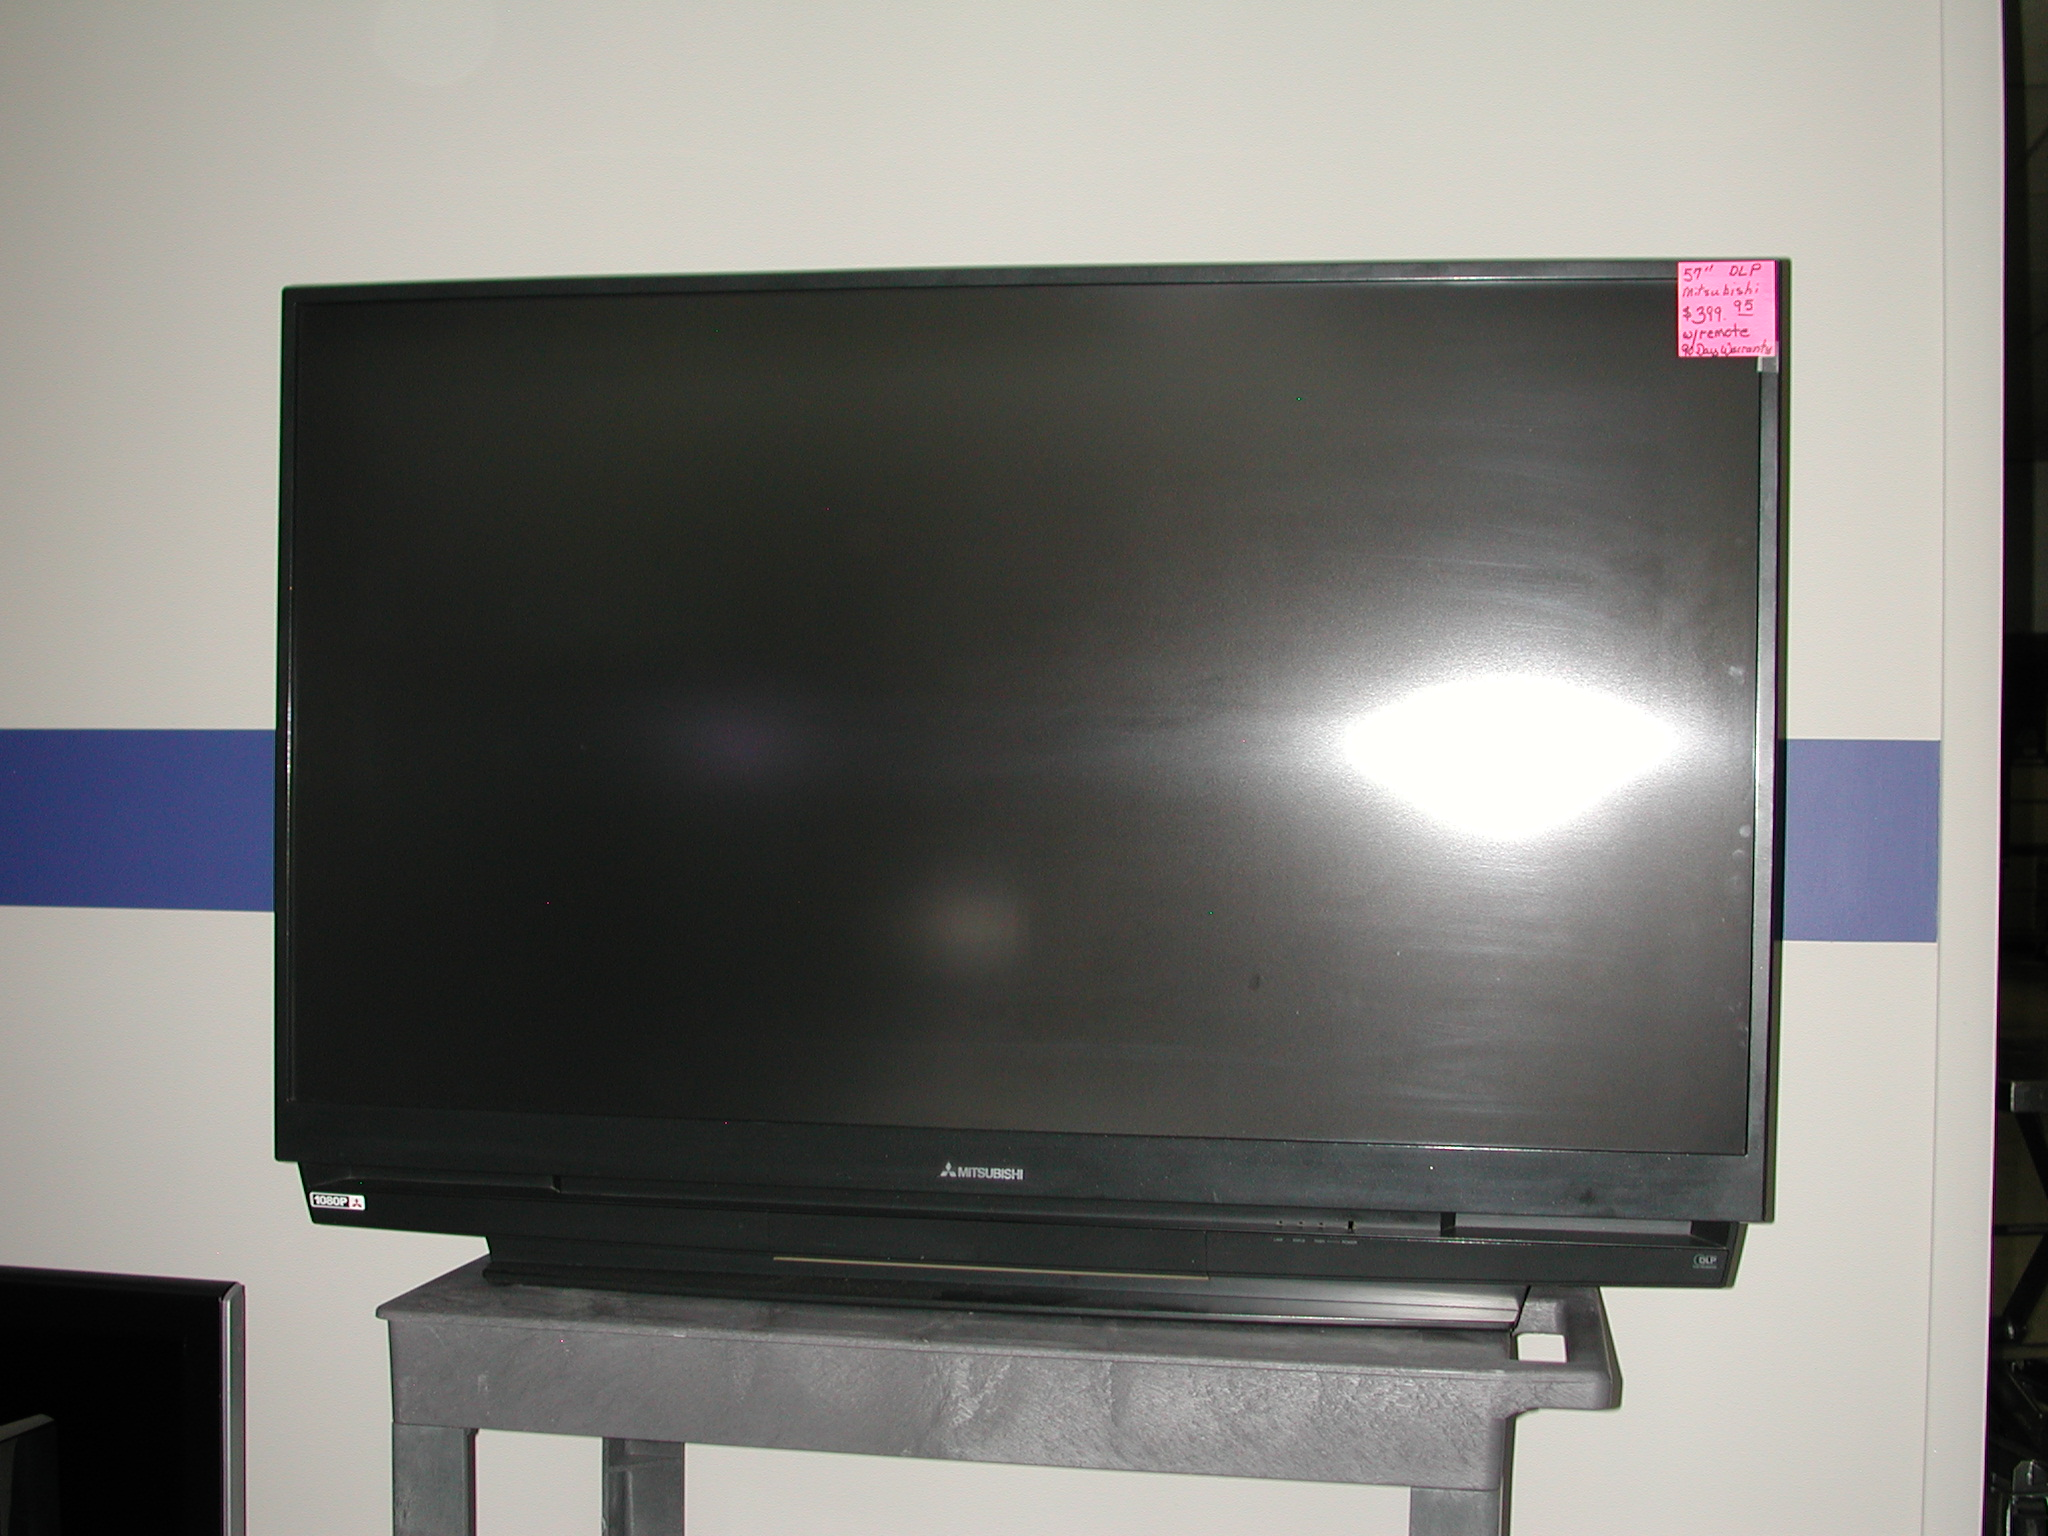 tv your replacing dlp mitsubishi med series wd on room philips lamp c